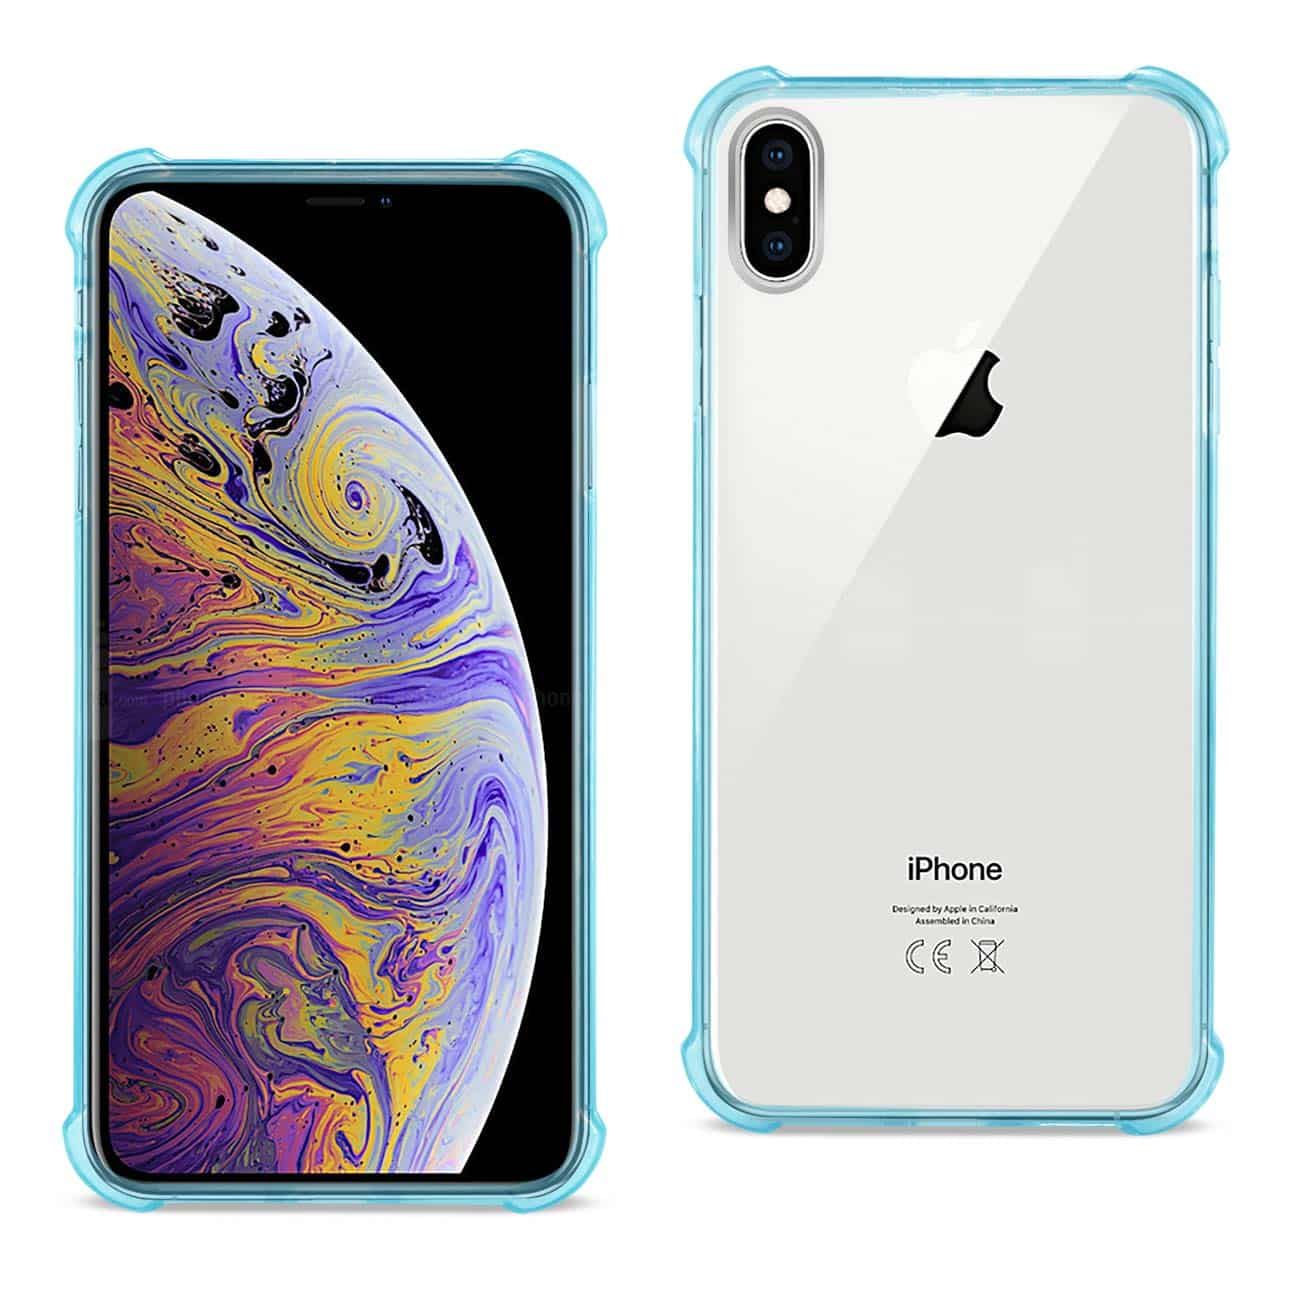 iPhone XS Max Clear Bumper Case With Air Cushion Protection In Clear Navy